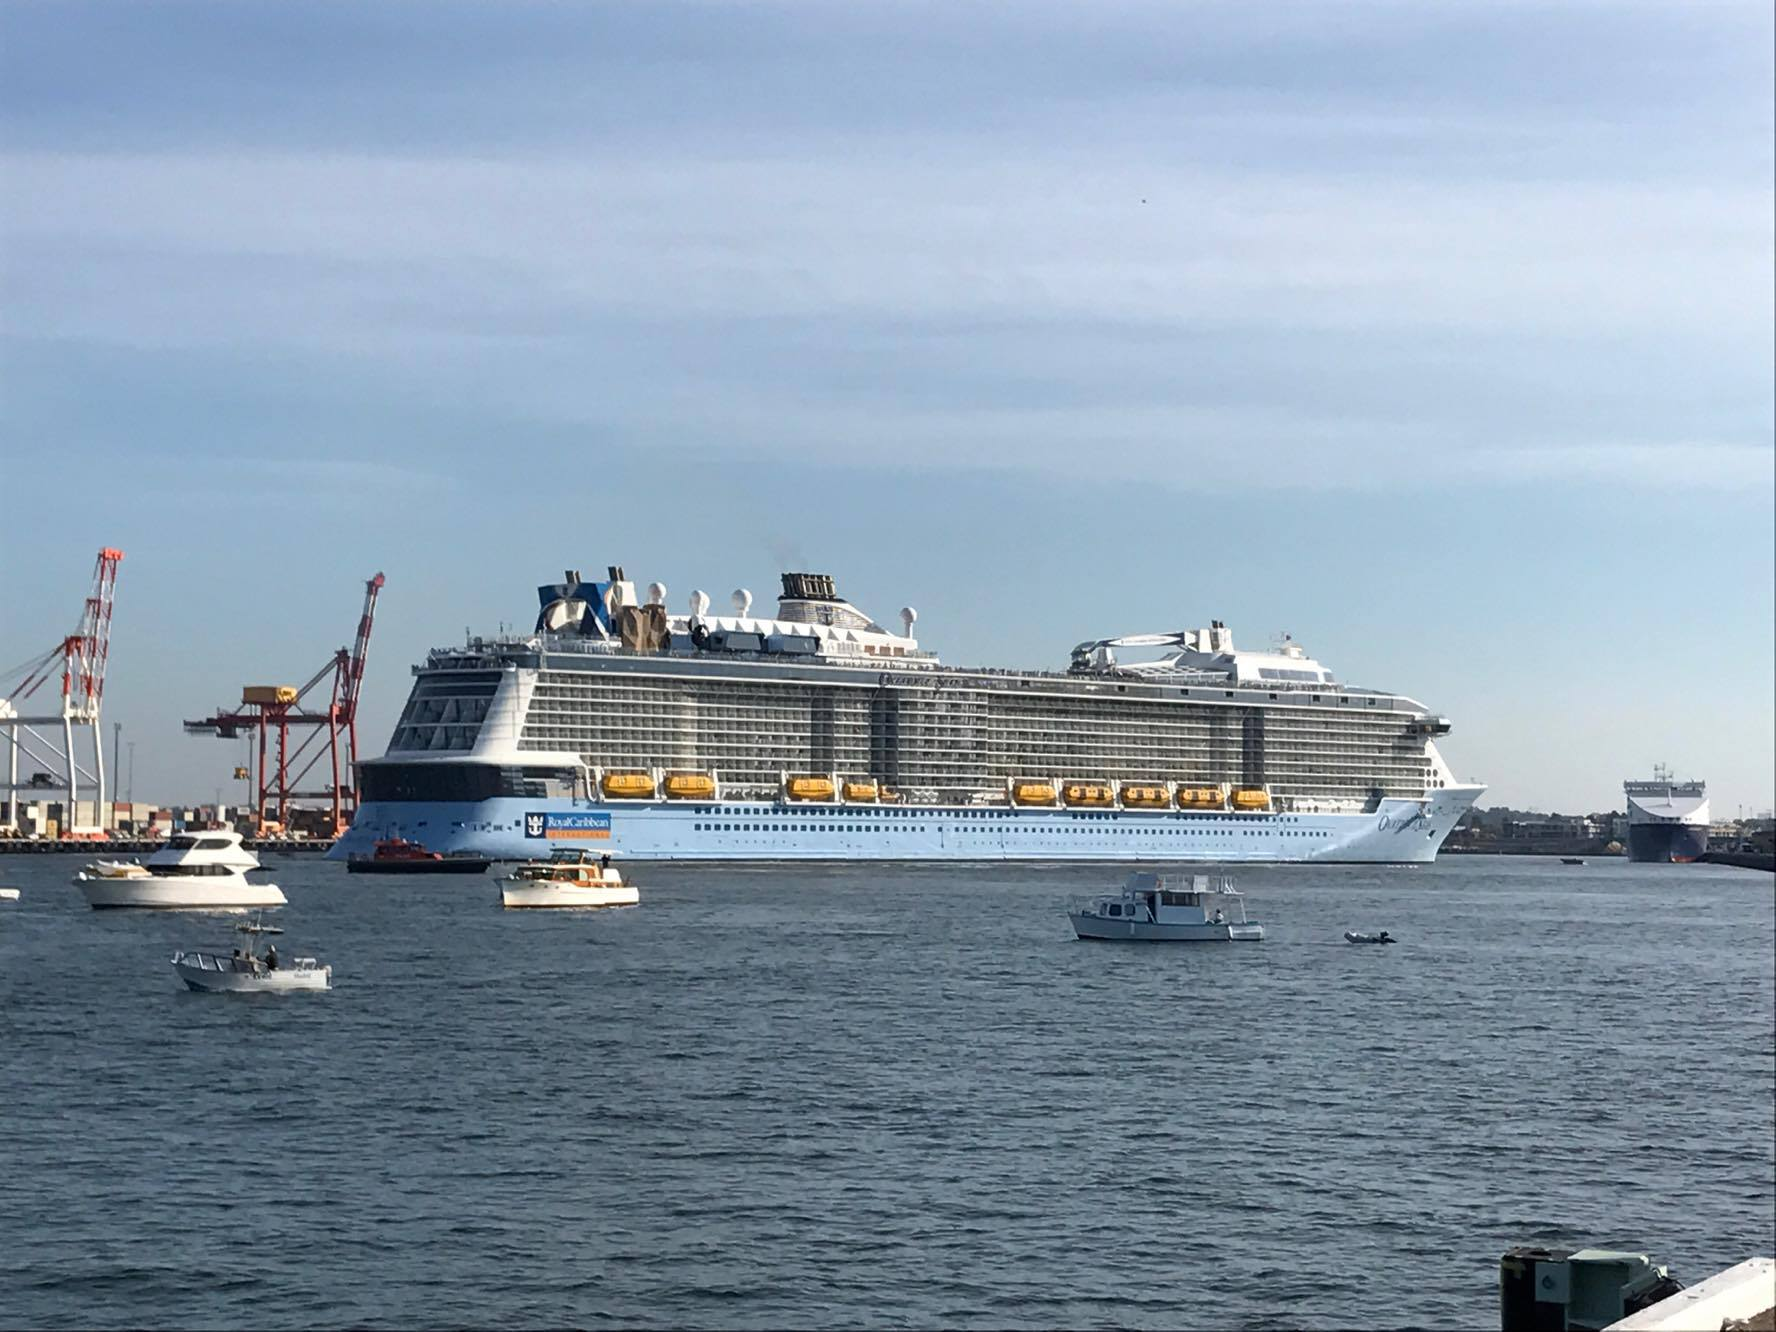 Ovation of the Seas docks in Fremantle